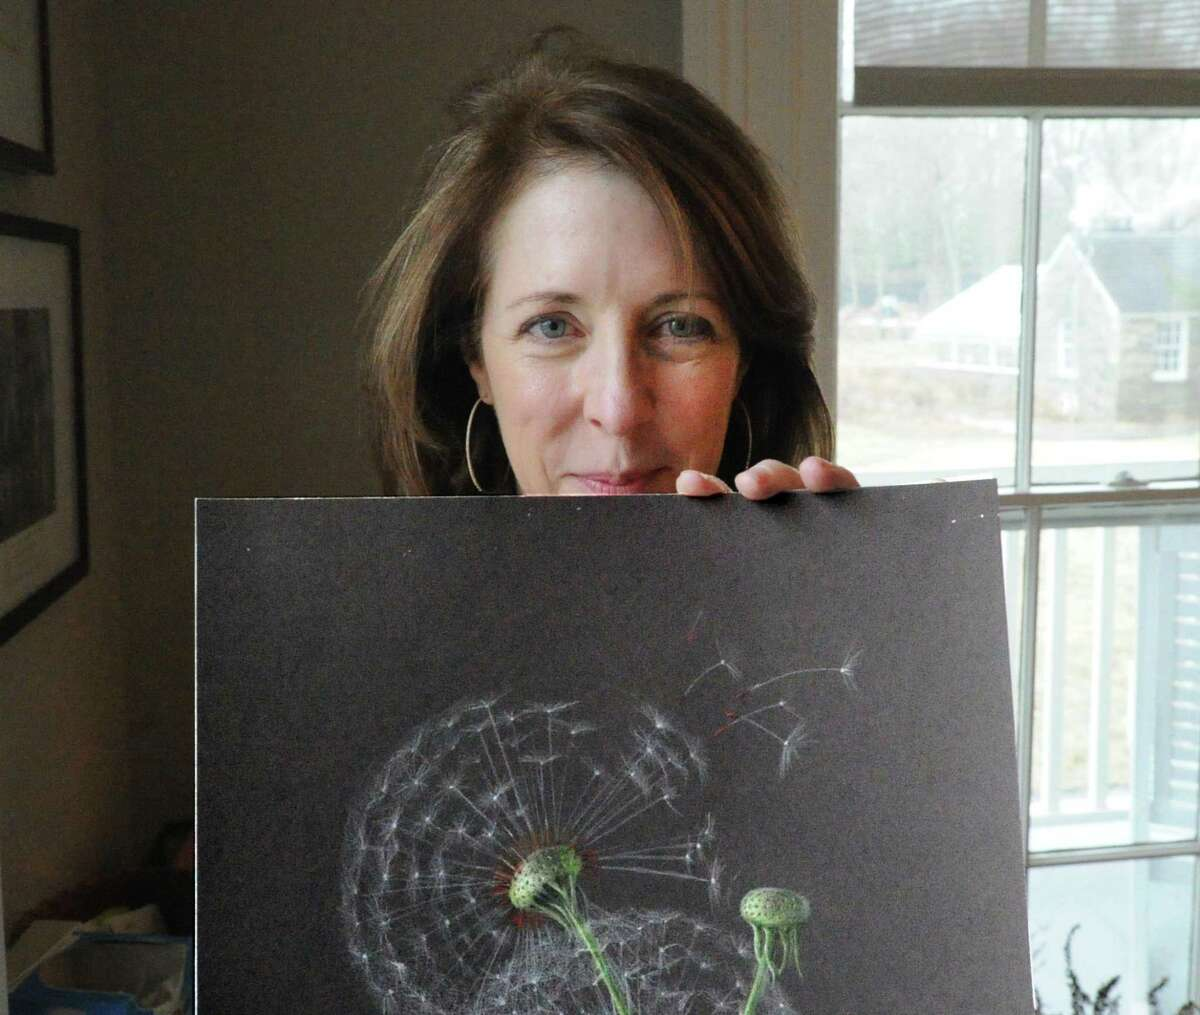 Botanical artist Jeanne Reiner poses with her drawing of a Dandelion seed stem.